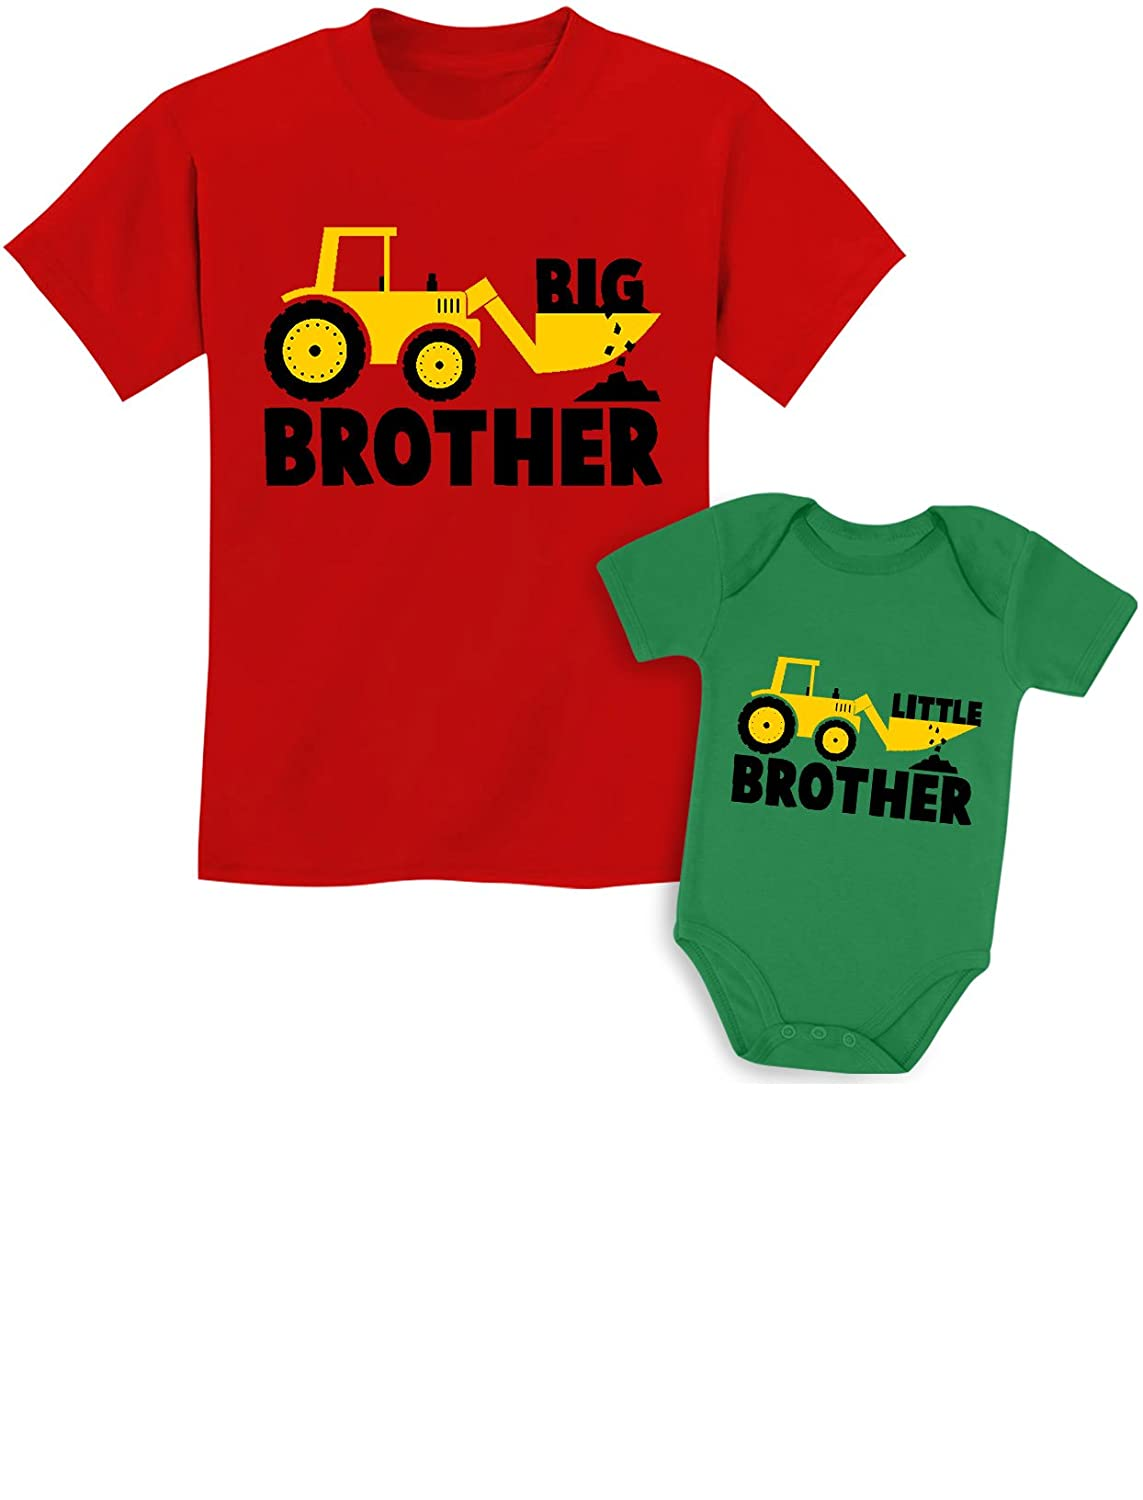 Tstars Big Brother Little Brother Shirts Gift for Tractor Loving Boys Siblings Set nCs9n0f3